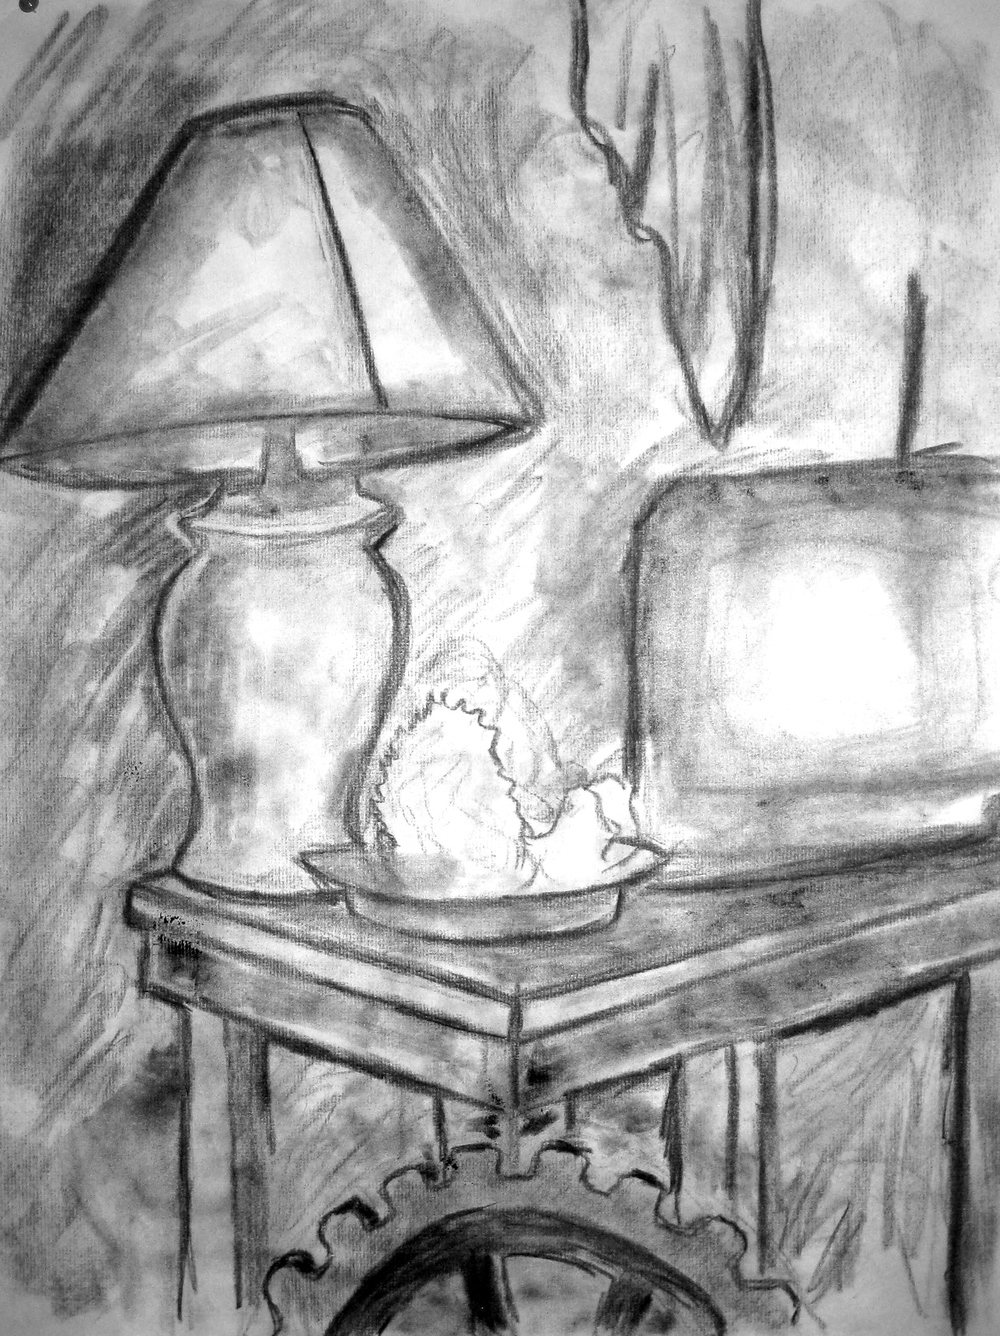 Still Life 2, Charcoal, 2010